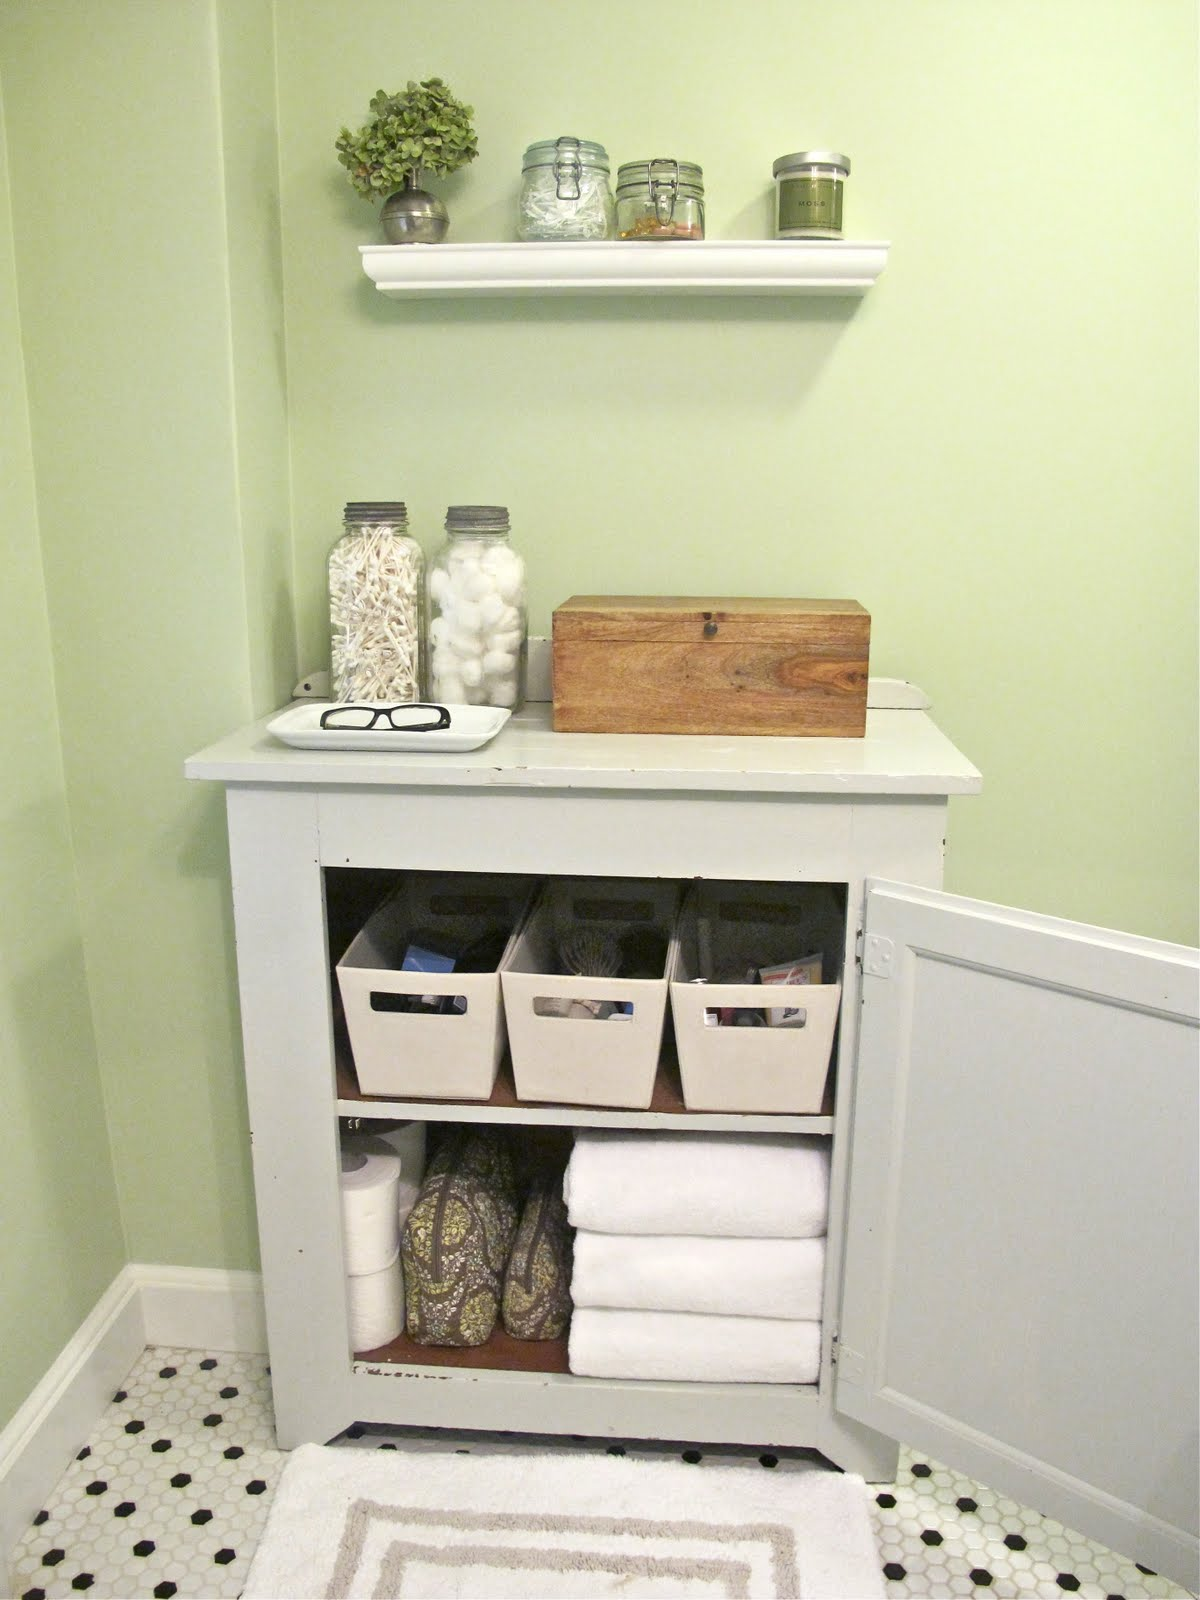 Jenny Steffens Hobick Bathroom Redo Pinterest Challenge Inspiration For Adding Storage To A